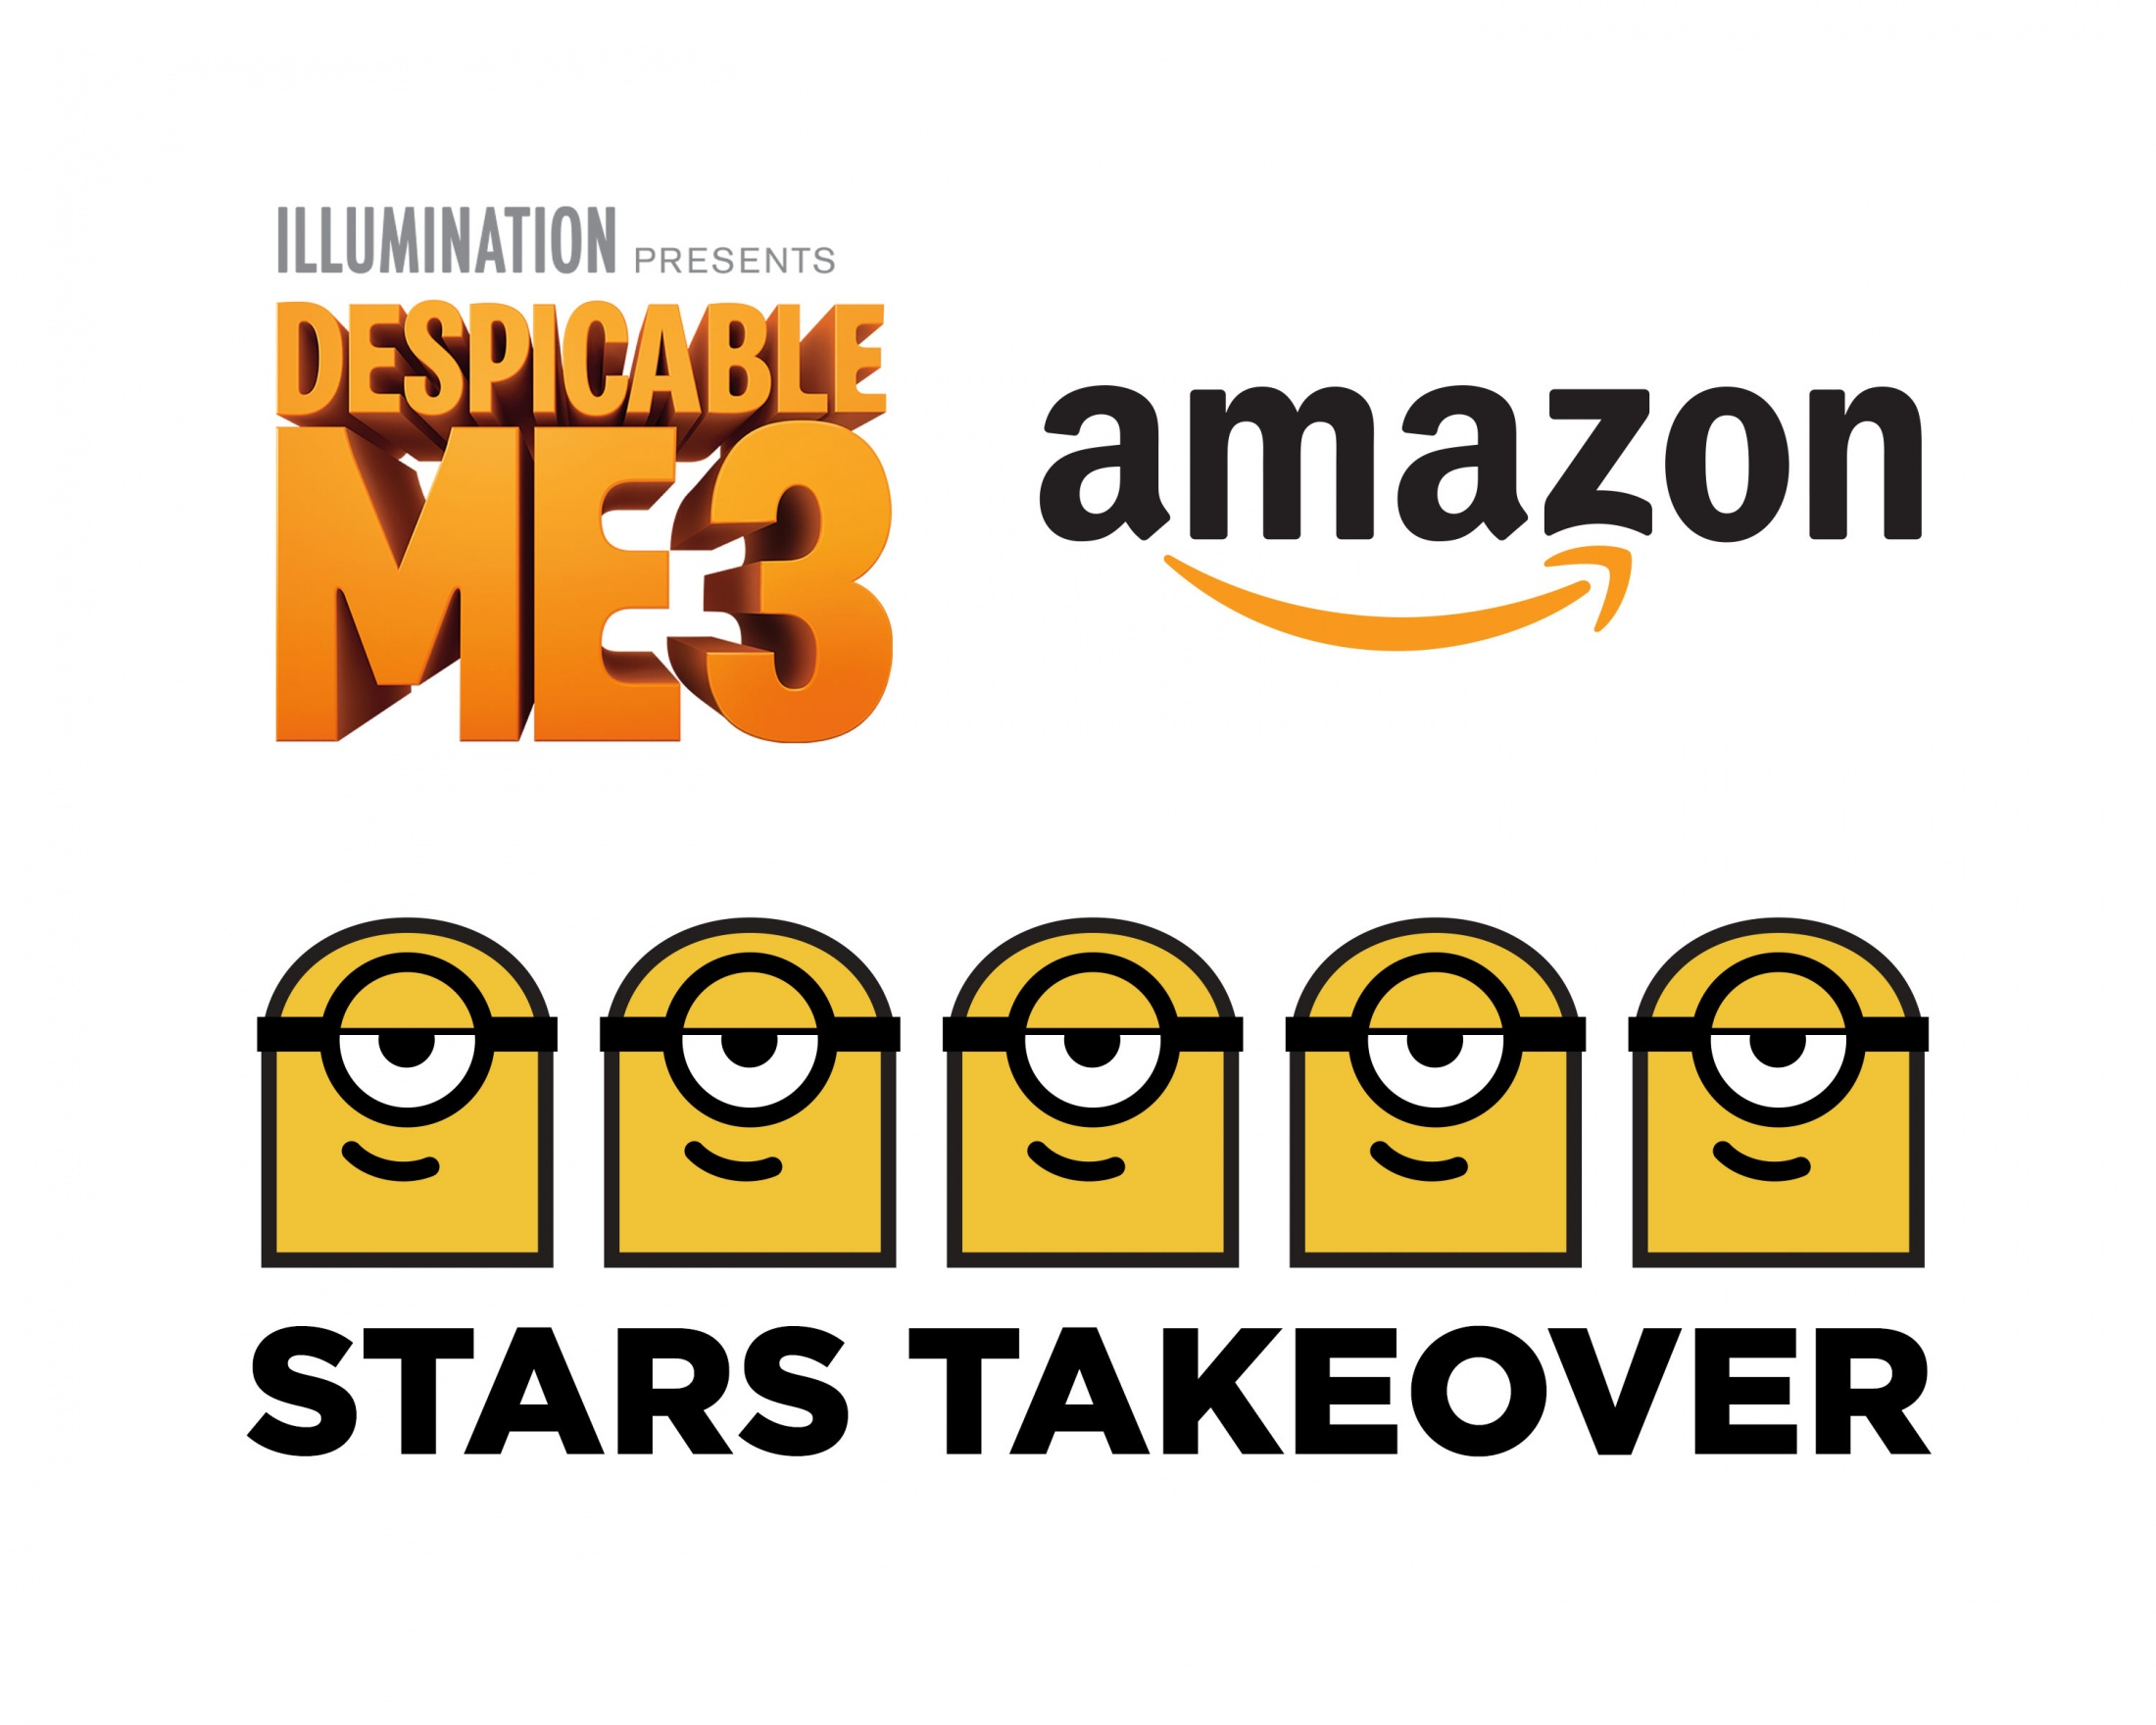 Thumbnail for Despicable Me 3 - Amazon Stars Takeover